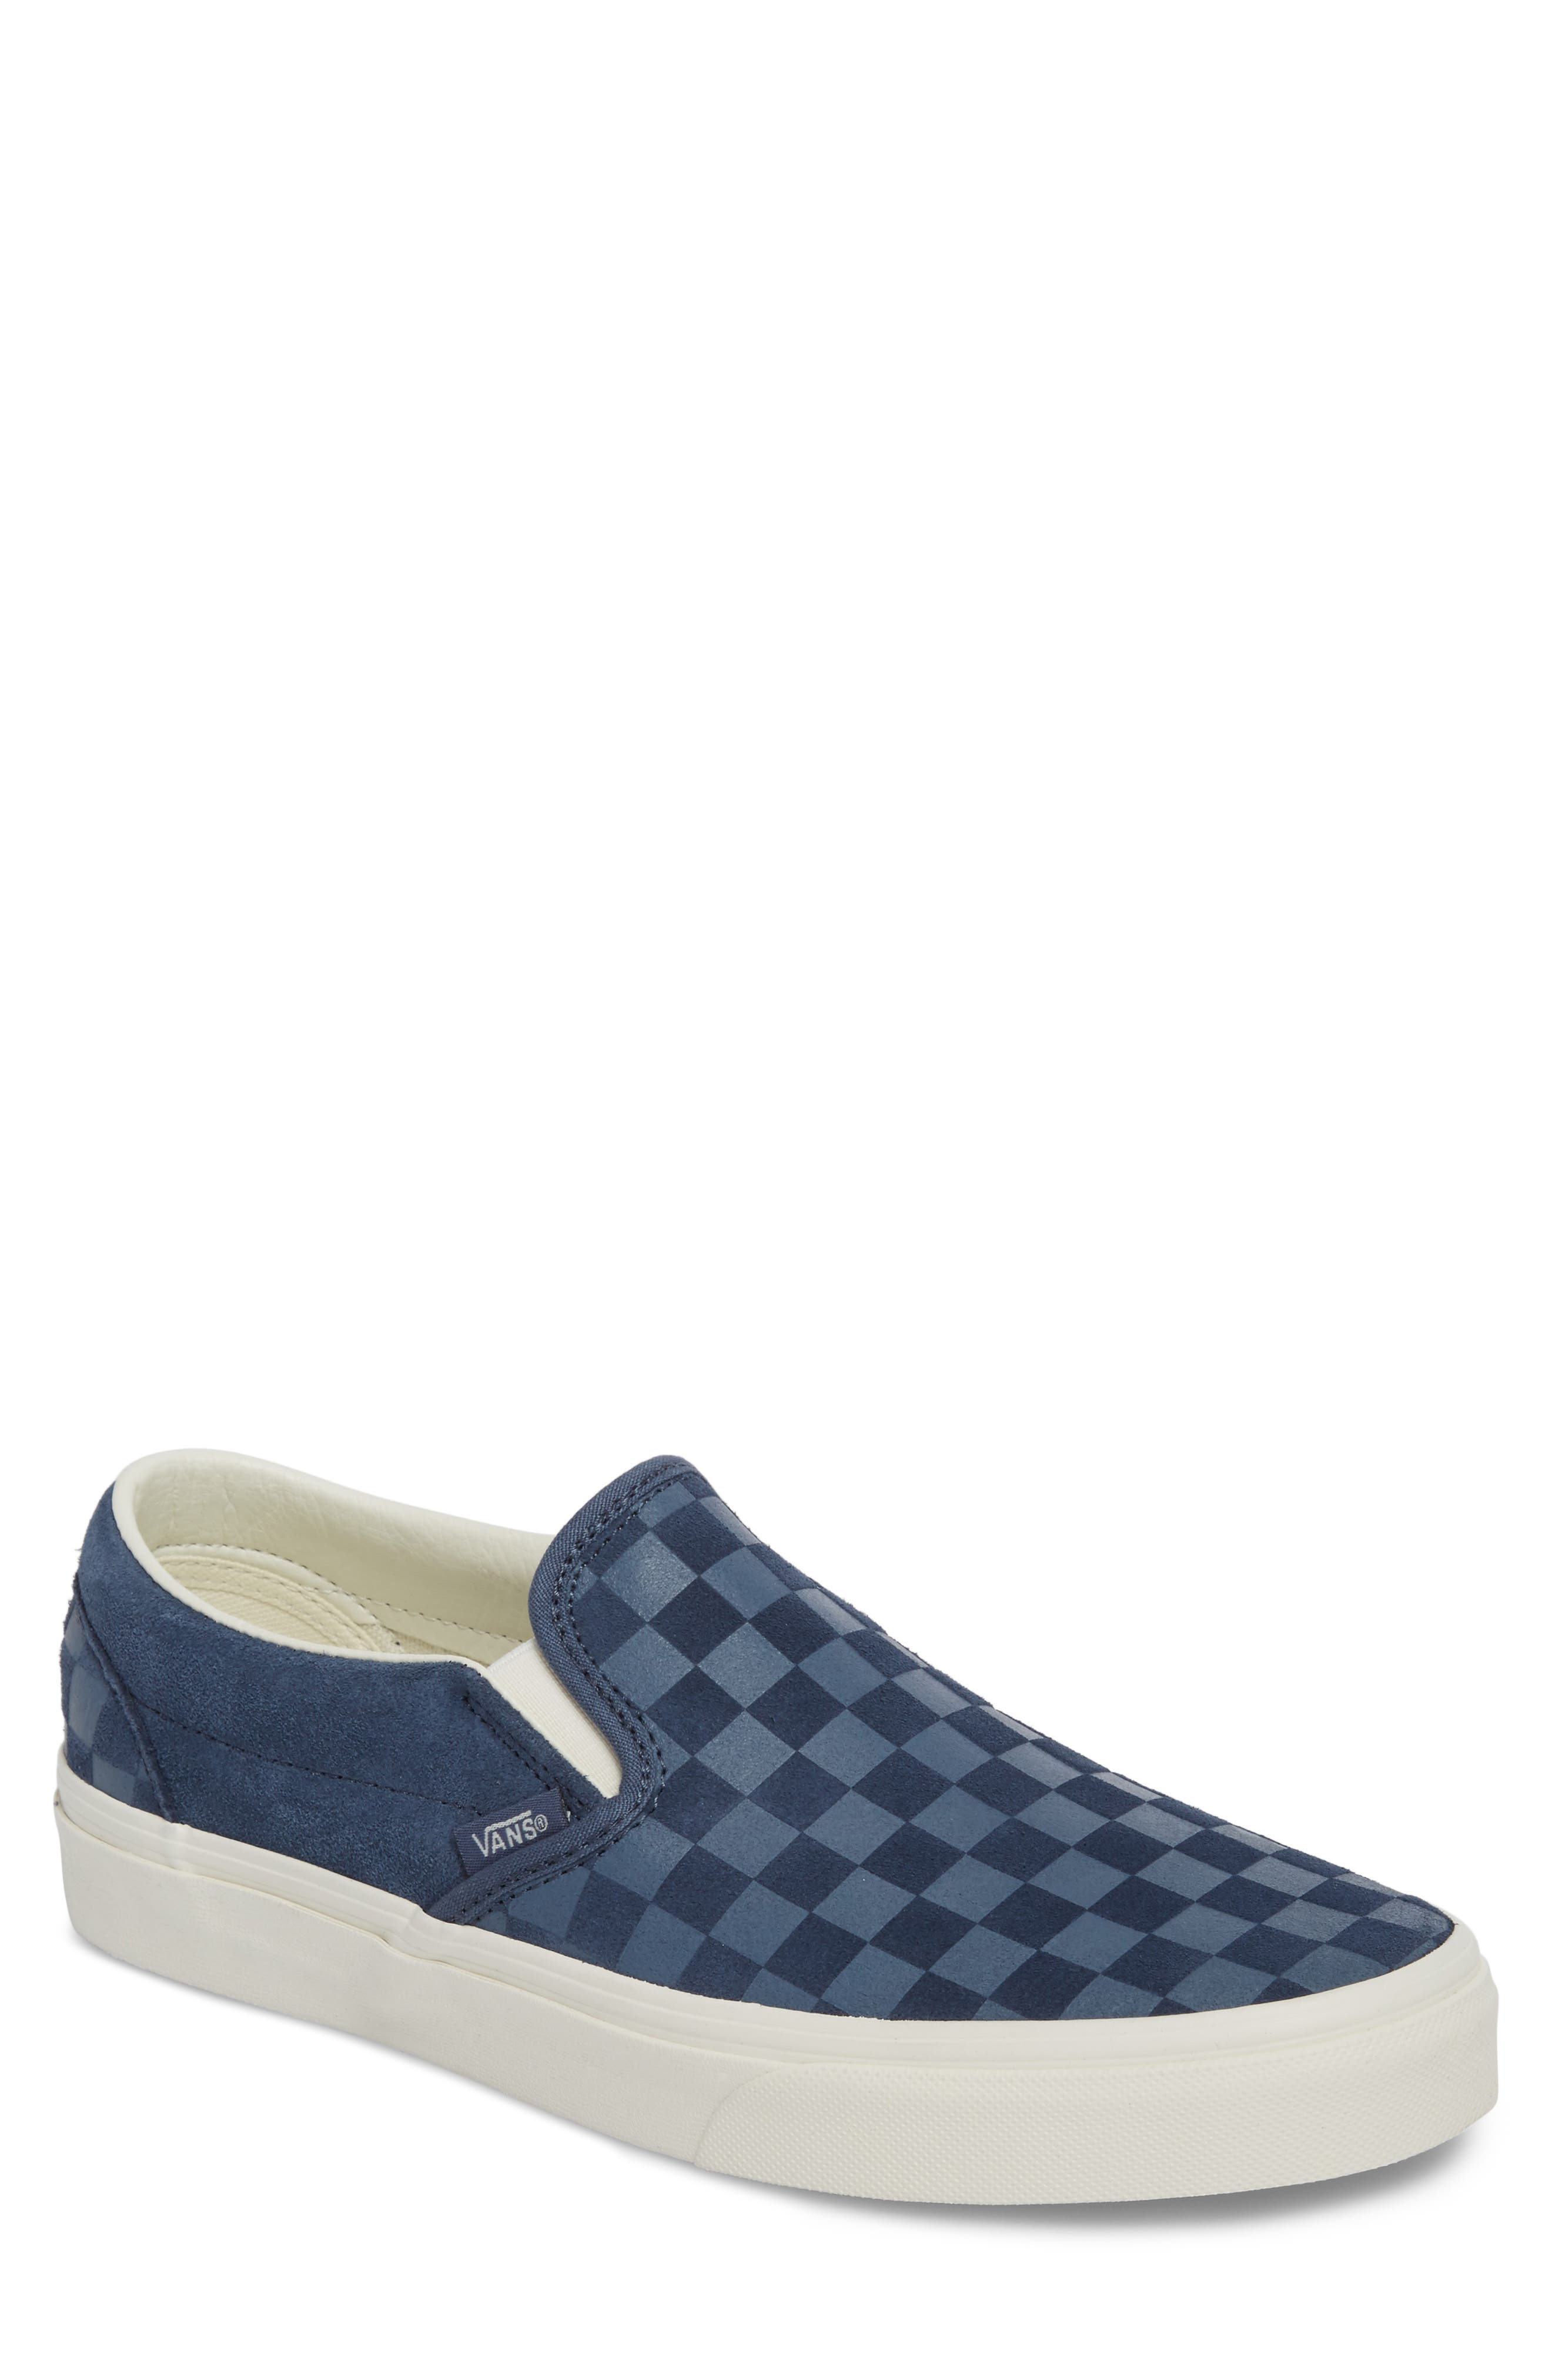 Classic Slip-On Sneaker,                         Main,                         color, Indigo/ Marshmallow Leather